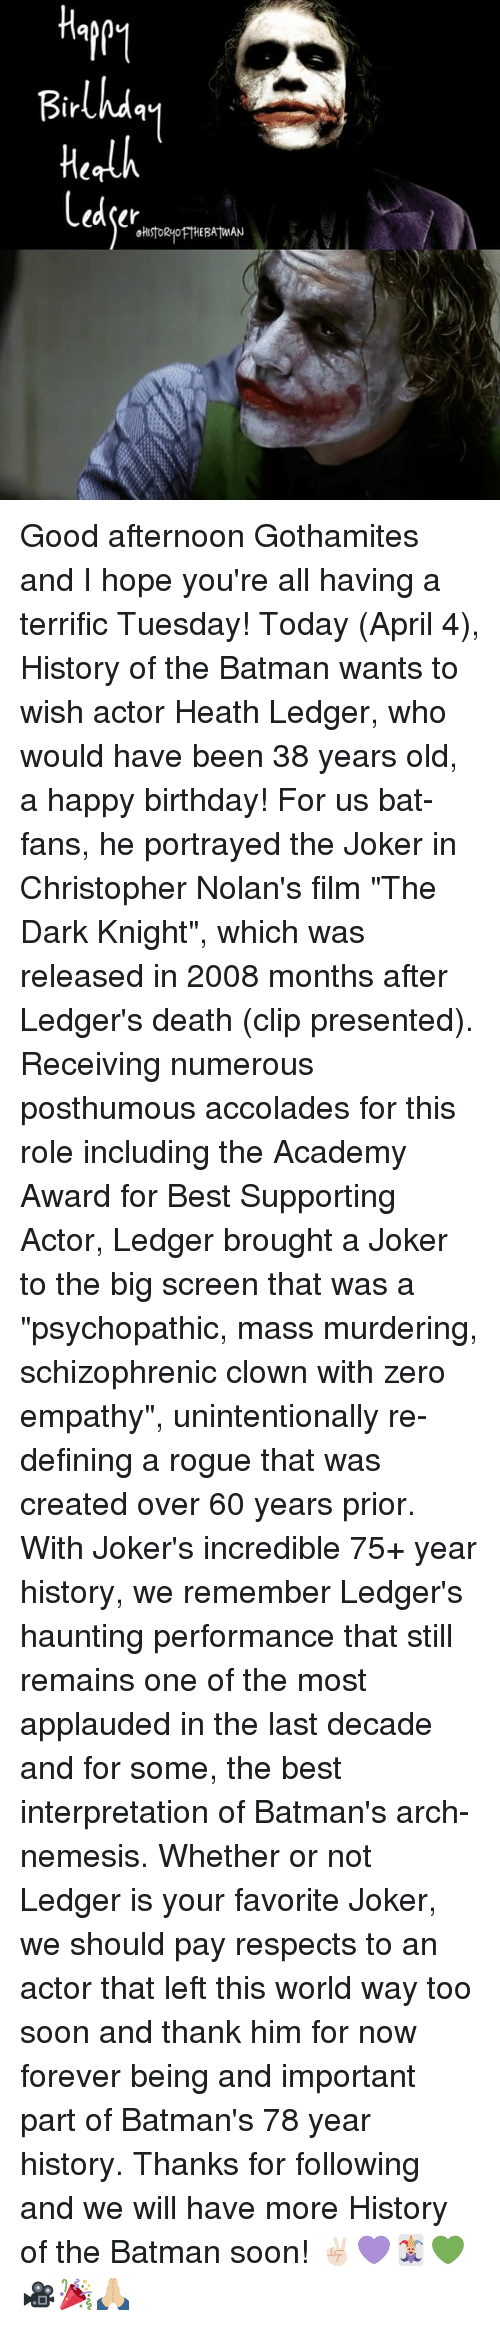 """accolades: ir  Laser  okustORyoFTHE BATMAN Good afternoon Gothamites and I hope you're all having a terrific Tuesday! Today (April 4), History of the Batman wants to wish actor Heath Ledger, who would have been 38 years old, a happy birthday! For us bat-fans, he portrayed the Joker in Christopher Nolan's film """"The Dark Knight"""", which was released in 2008 months after Ledger's death (clip presented). Receiving numerous posthumous accolades for this role including the Academy Award for Best Supporting Actor, Ledger brought a Joker to the big screen that was a """"psychopathic, mass murdering, schizophrenic clown with zero empathy"""", unintentionally re-defining a rogue that was created over 60 years prior. With Joker's incredible 75+ year history, we remember Ledger's haunting performance that still remains one of the most applauded in the last decade and for some, the best interpretation of Batman's arch-nemesis. Whether or not Ledger is your favorite Joker, we should pay respects to an actor that left this world way too soon and thank him for now forever being and important part of Batman's 78 year history. Thanks for following and we will have more History of the Batman soon! ✌🏻️💜🃏💚🎥🎉🙏🏼"""